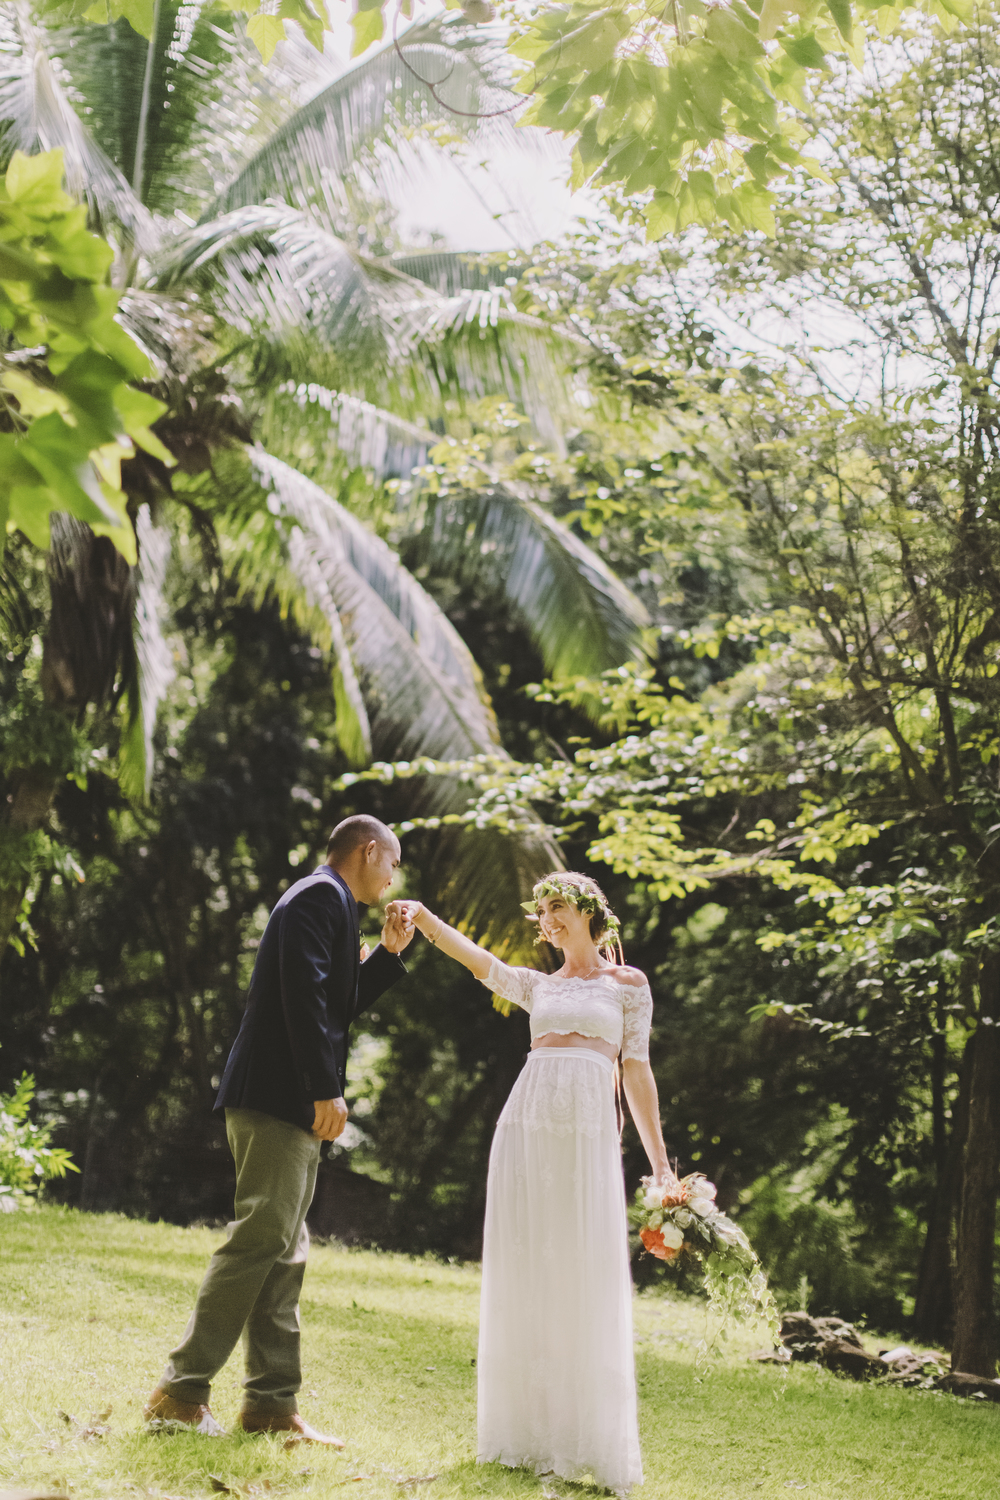 angie-diaz-photography-oahu-hawaii-wedding-tradewinds-ranch-01.jpg